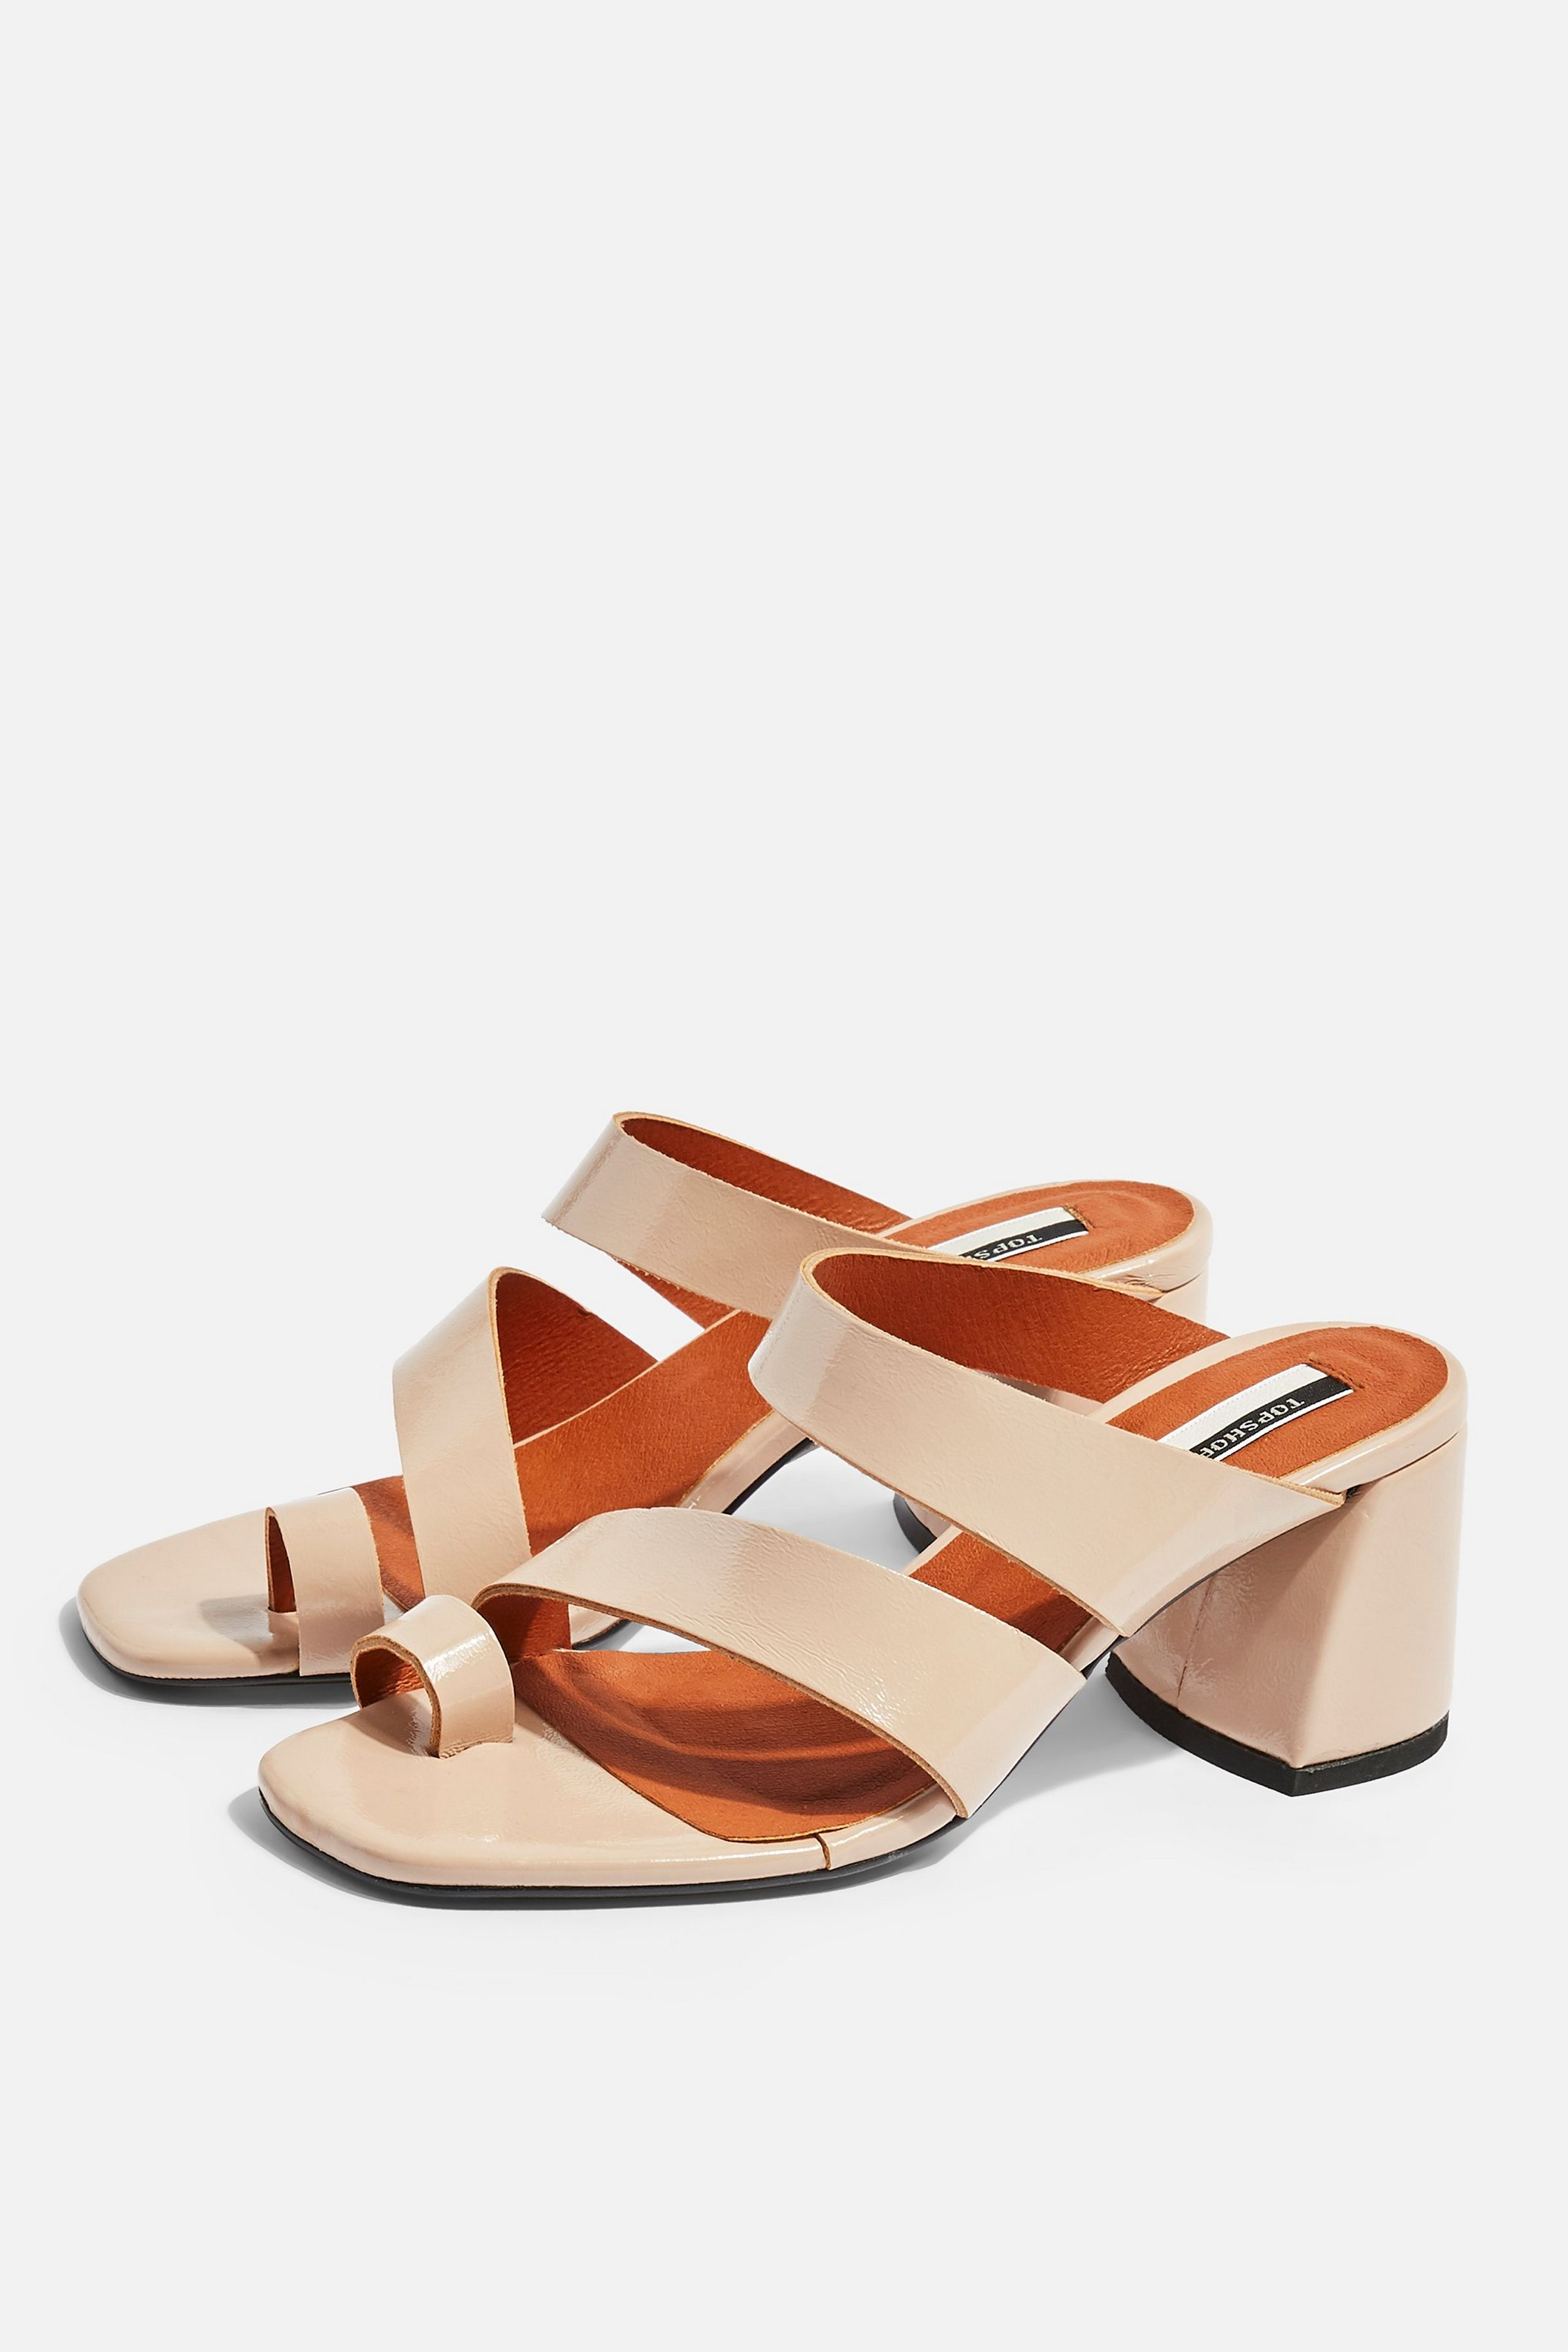 REYA Vegan Brown High Toe Loop Heels £59. Source: Topshop.com